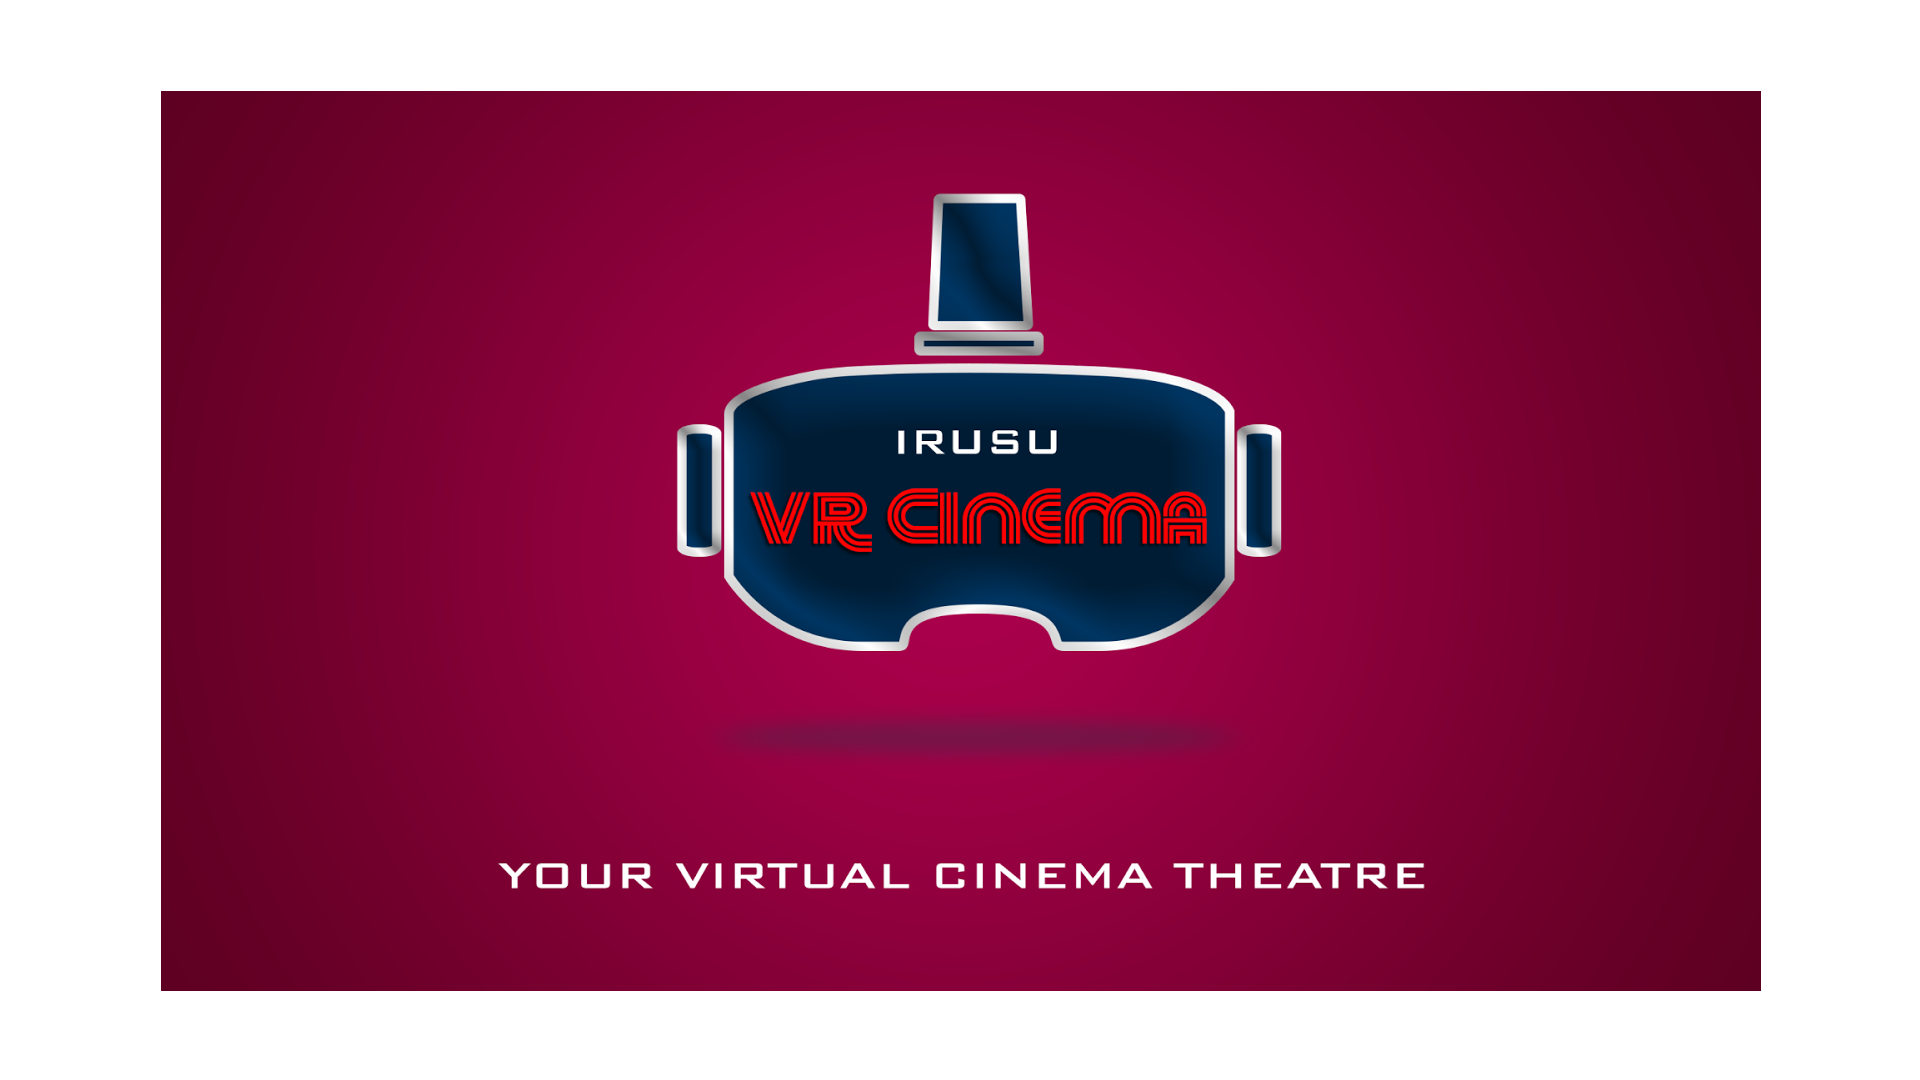 Irusu VR Cinema Player